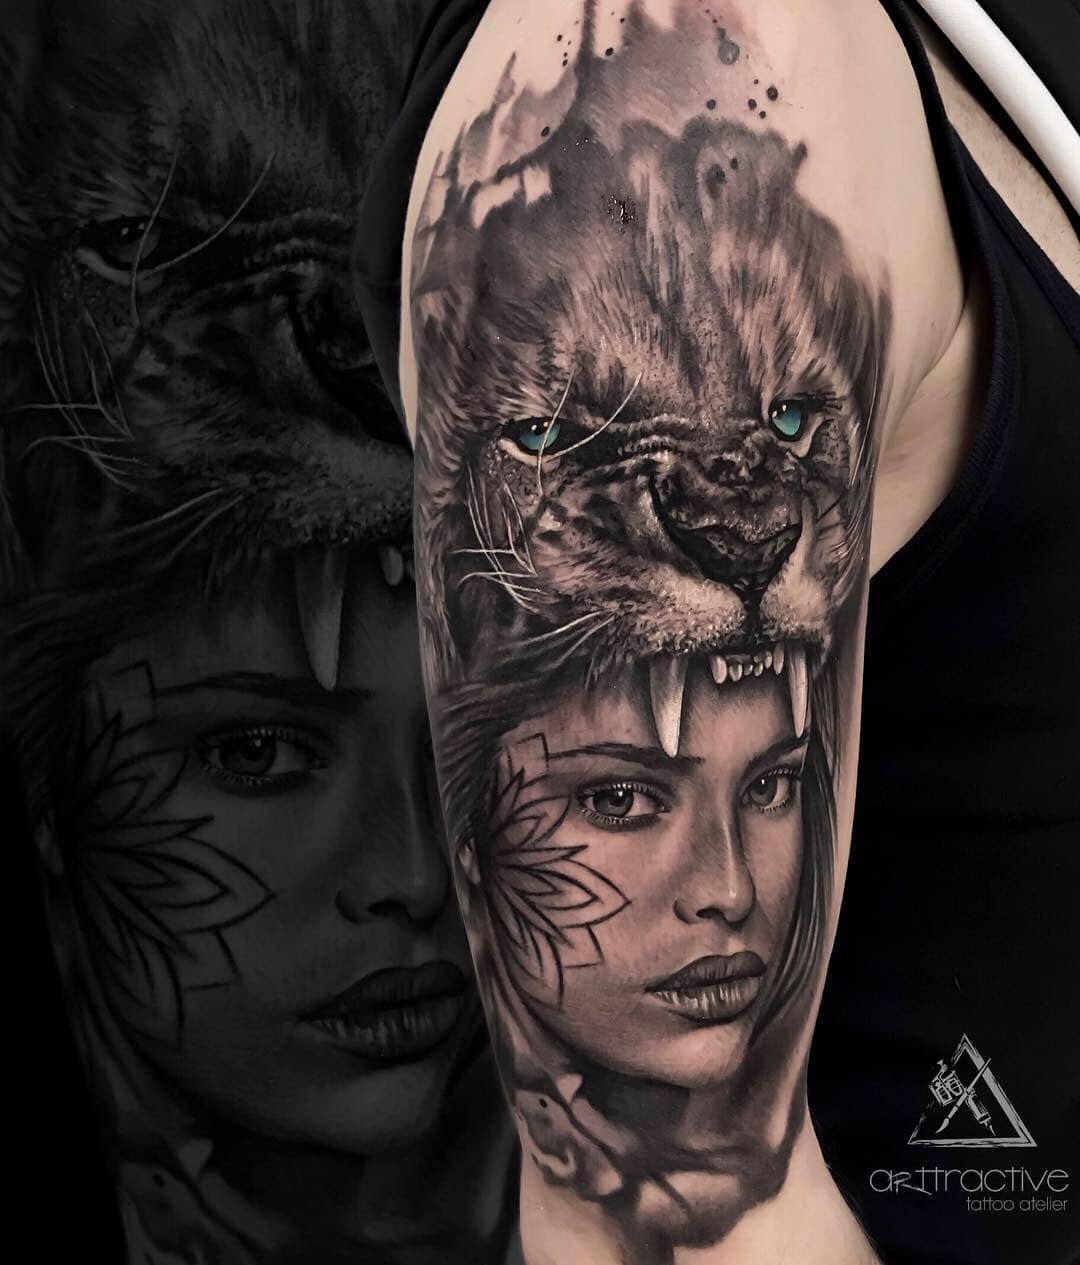 Woman Feat Lion Arttractive Tattoo Atelier